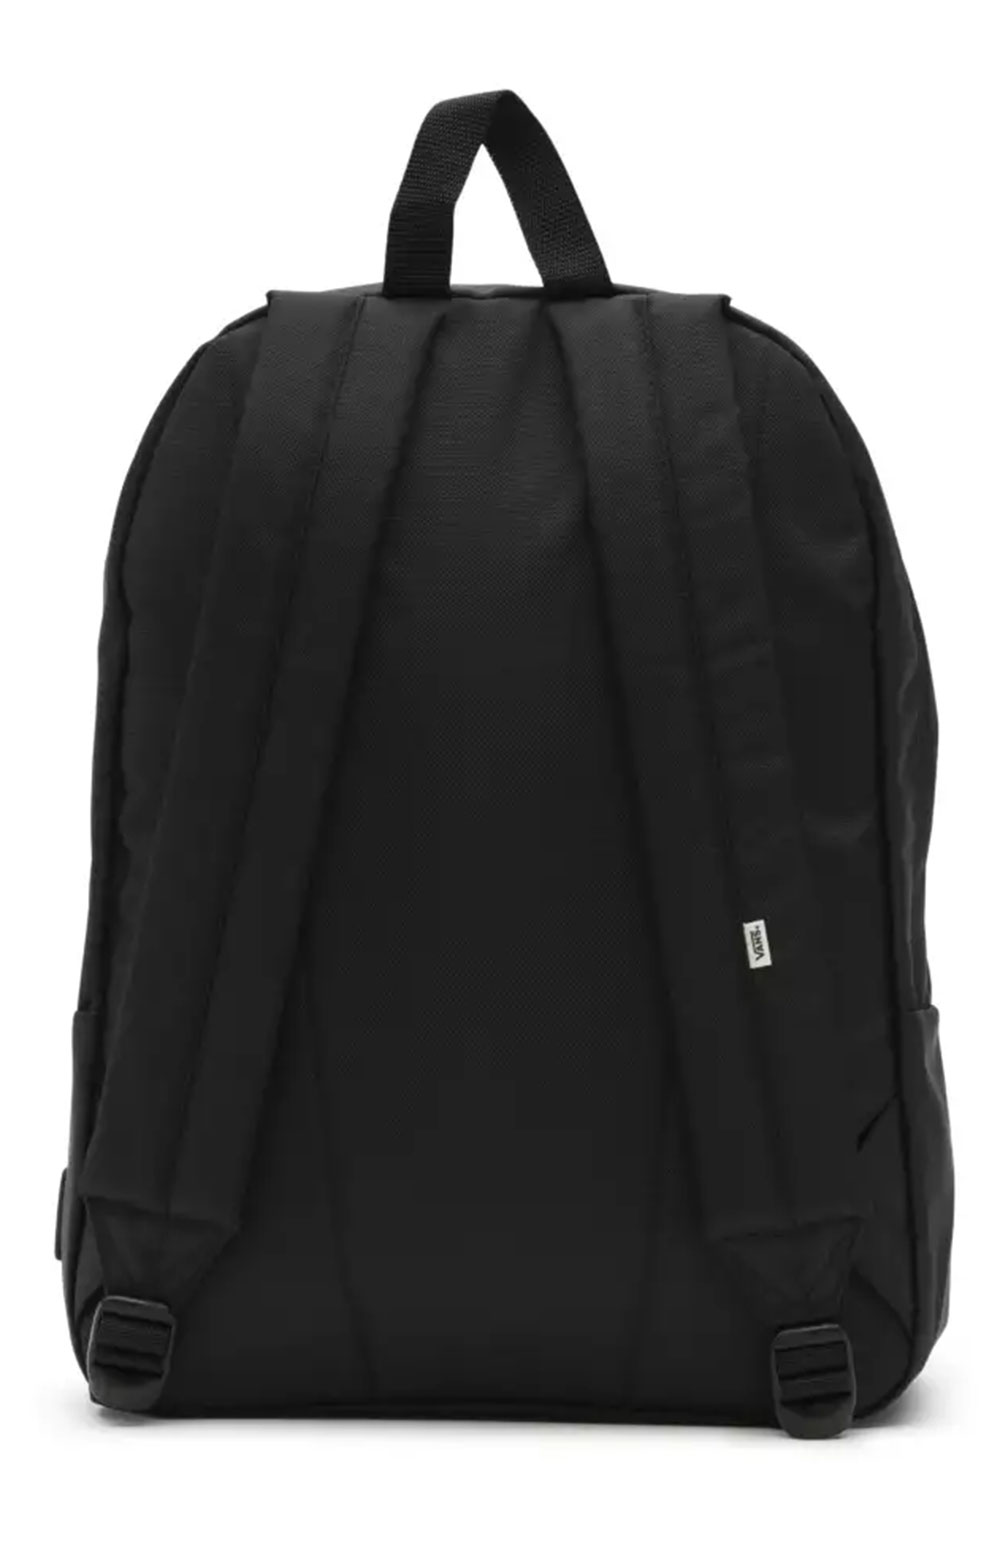 Jack Check Realm Backpack  2